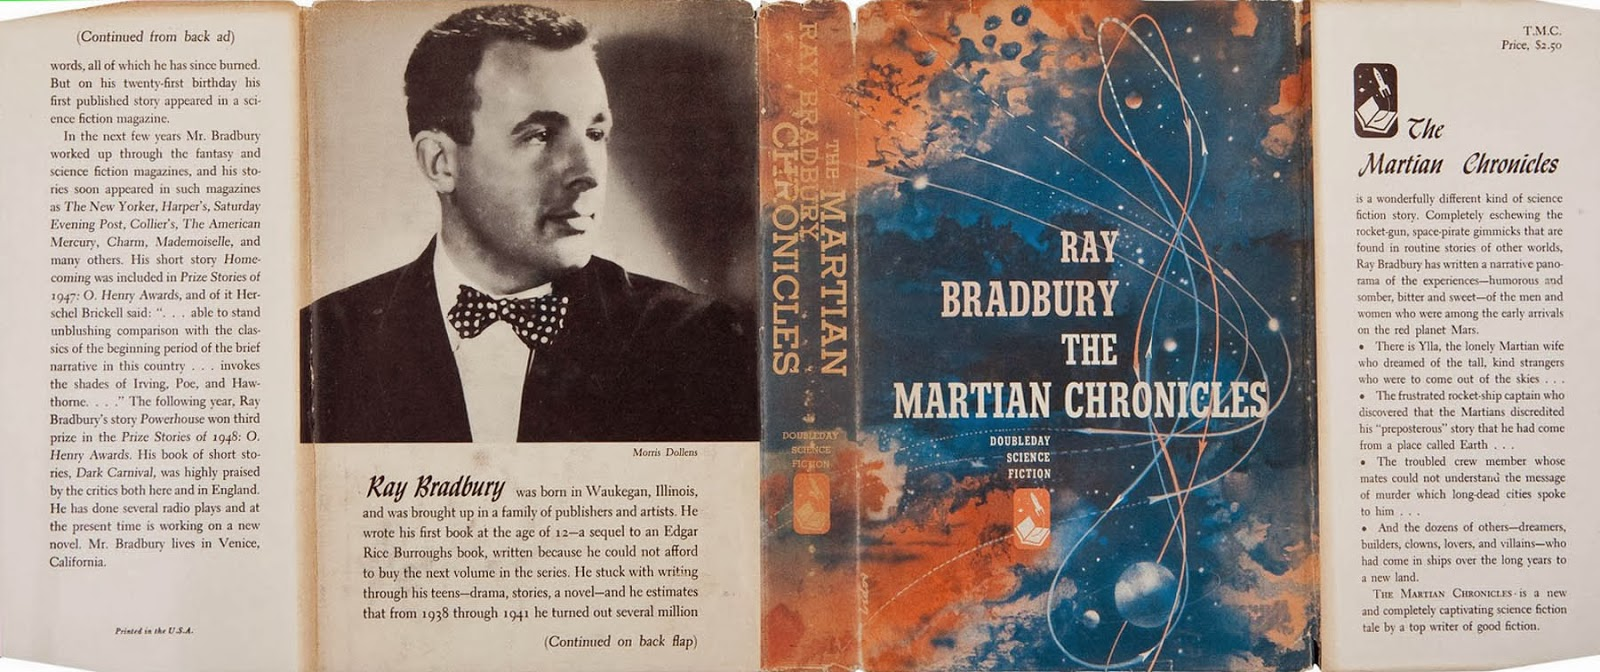 a glimpse into the life and literary works of ray bradbury Iconic author ray bradbury has died many of you know the importance ray bradbury played in my life bradbury would still be considered a literary genius.